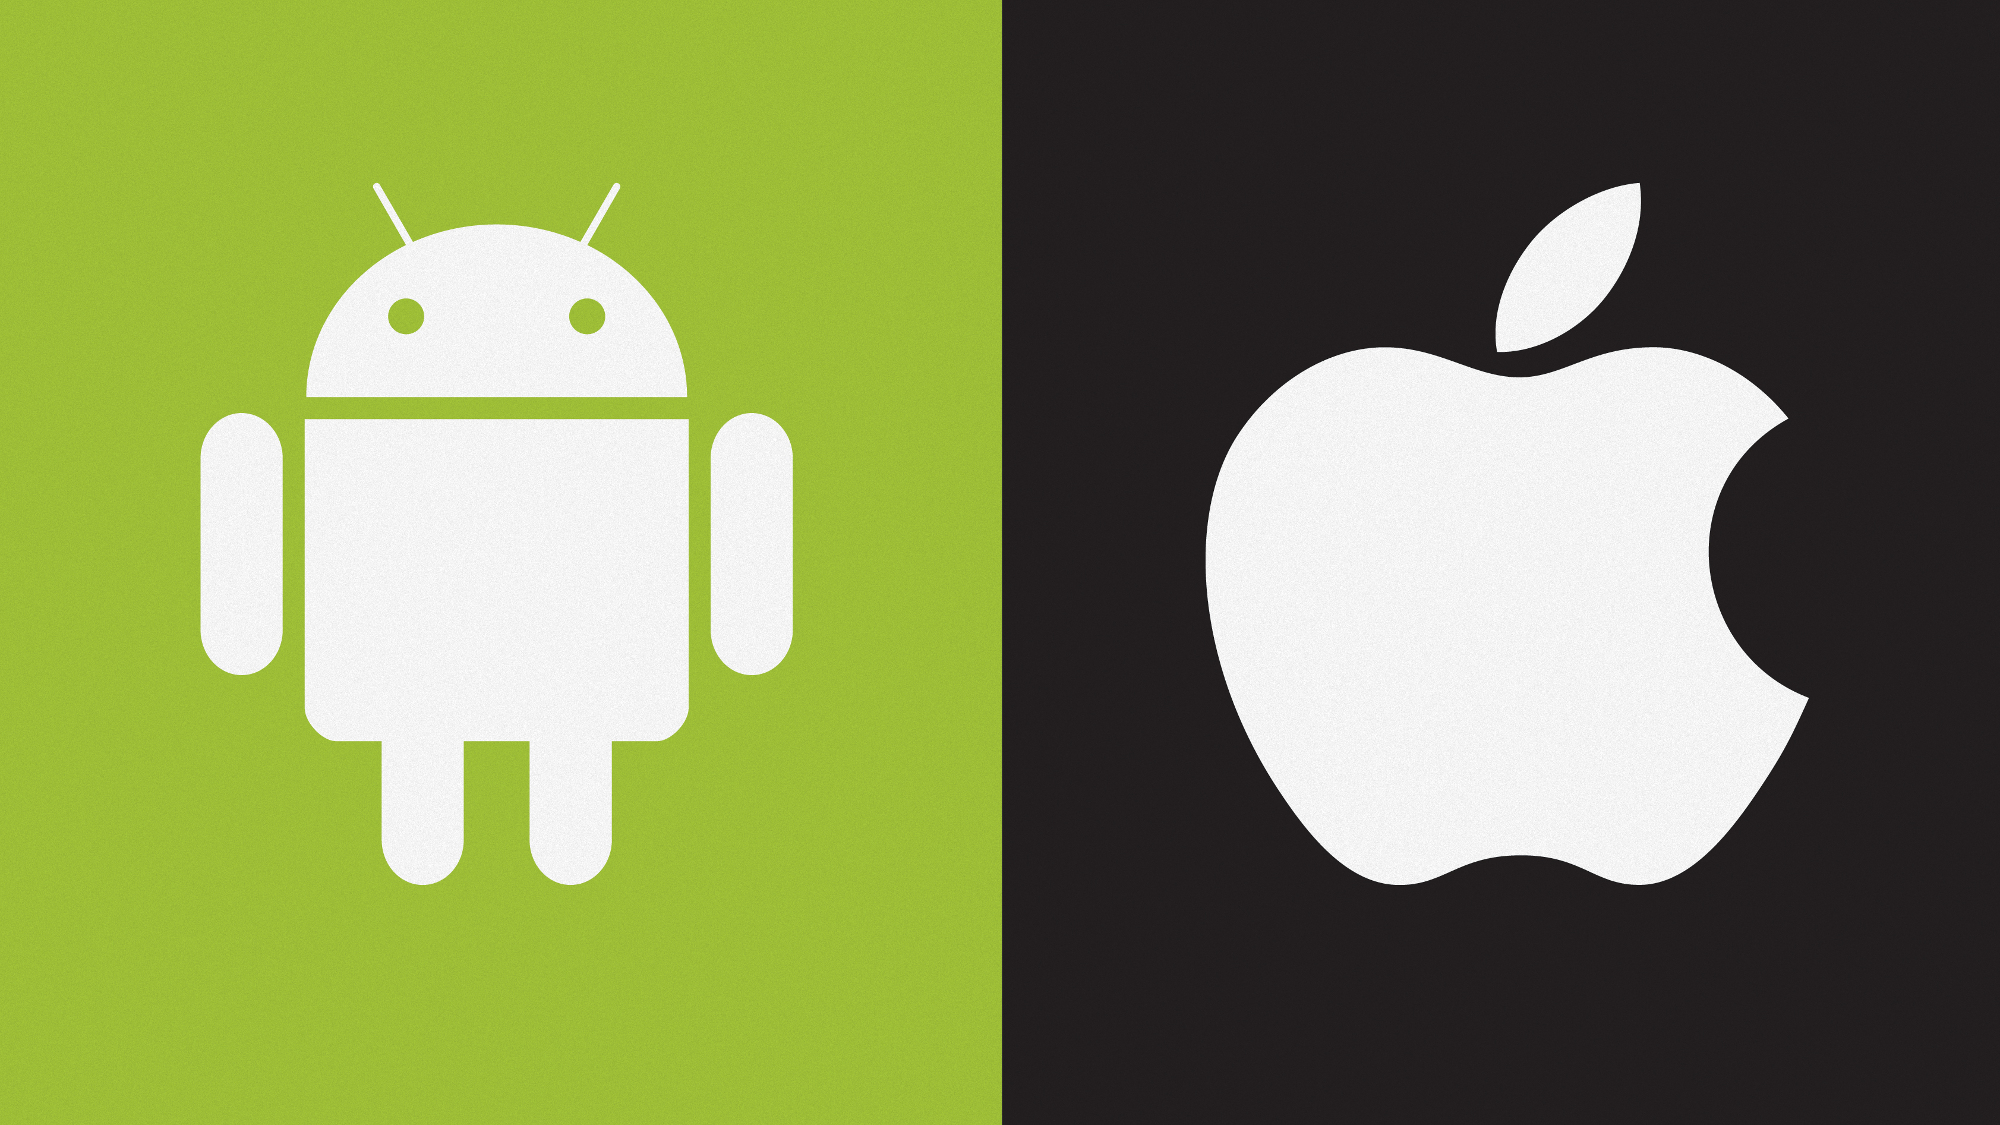 Android vs iOS user reaction